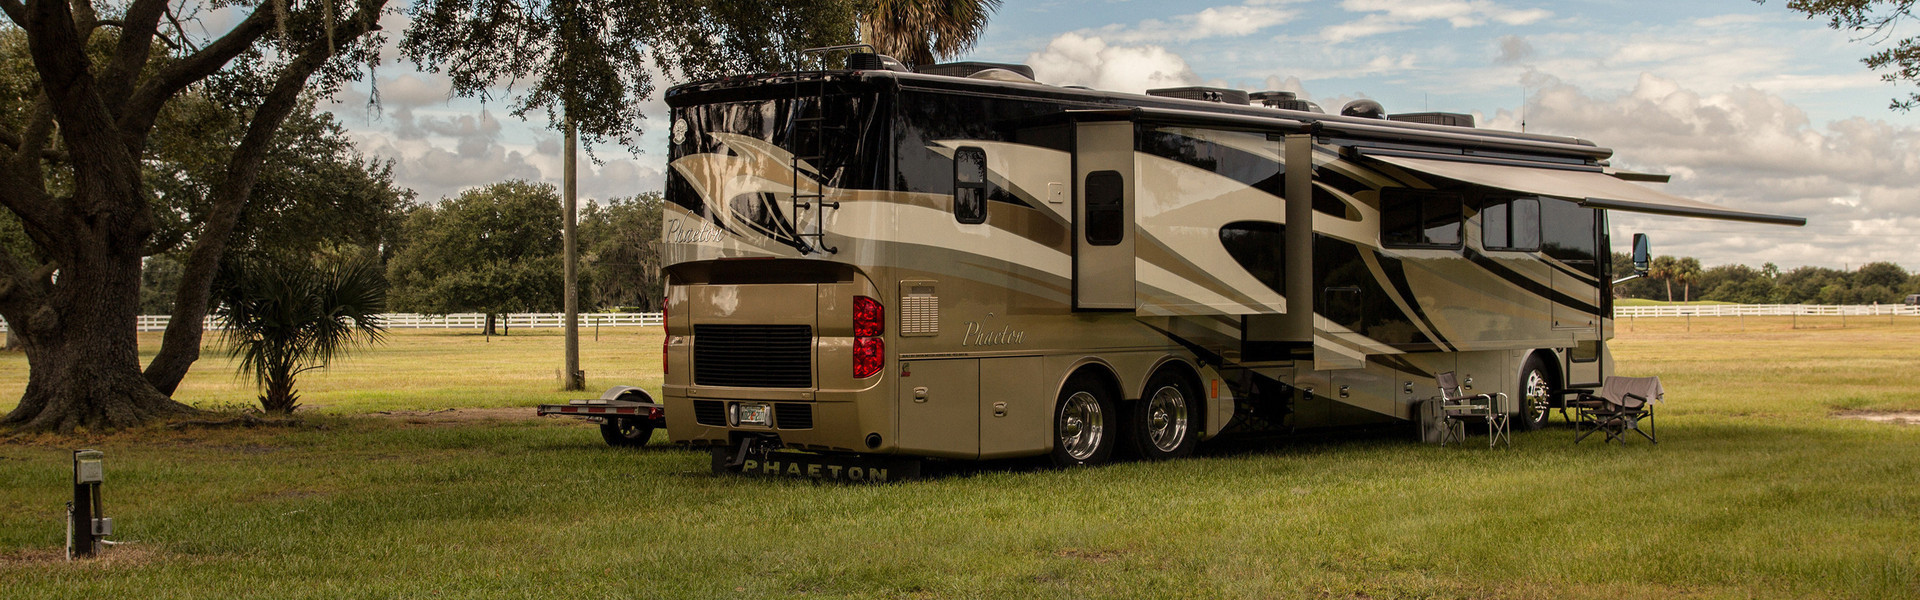 Florida RV Camping Resort near Orlando | RV Campground at Ranch